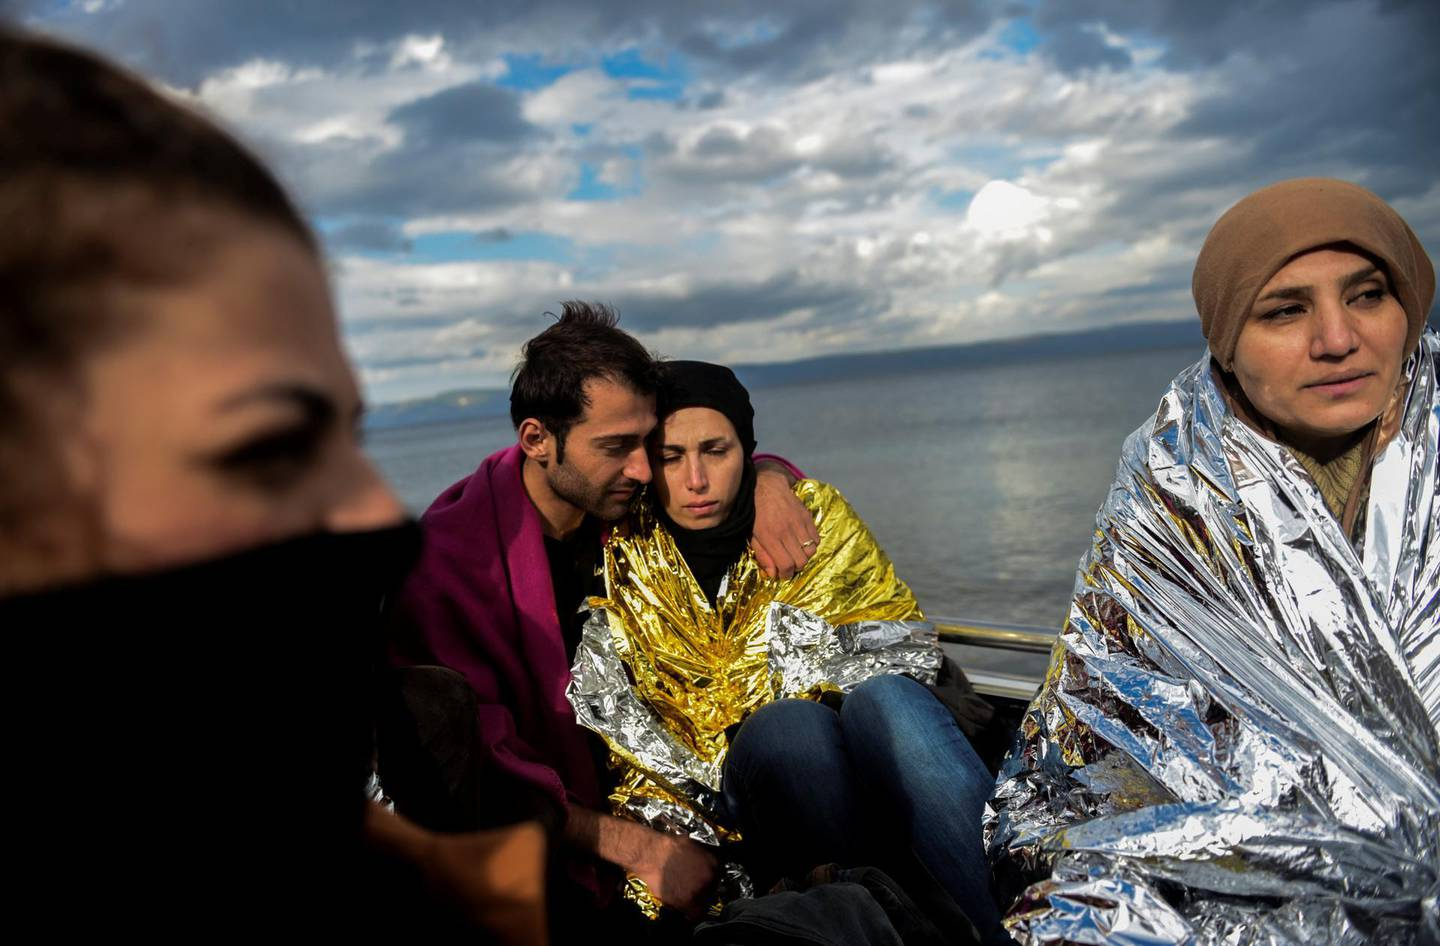 Migrant wait for humanitarian aid on the Greek island of Lesbos after crossing with other migrants and refugees the Aegean Sea from Turkey, on November 25, 2015.  More than 800.000 migrants, mostly fleeing war and persecution in Syria, Iraq and Afghanistan, have crossed the Mediterranean this year to reach Europe. AFP PHOTO / BULENT KILIC / AFP PHOTO / BULENT KILIC